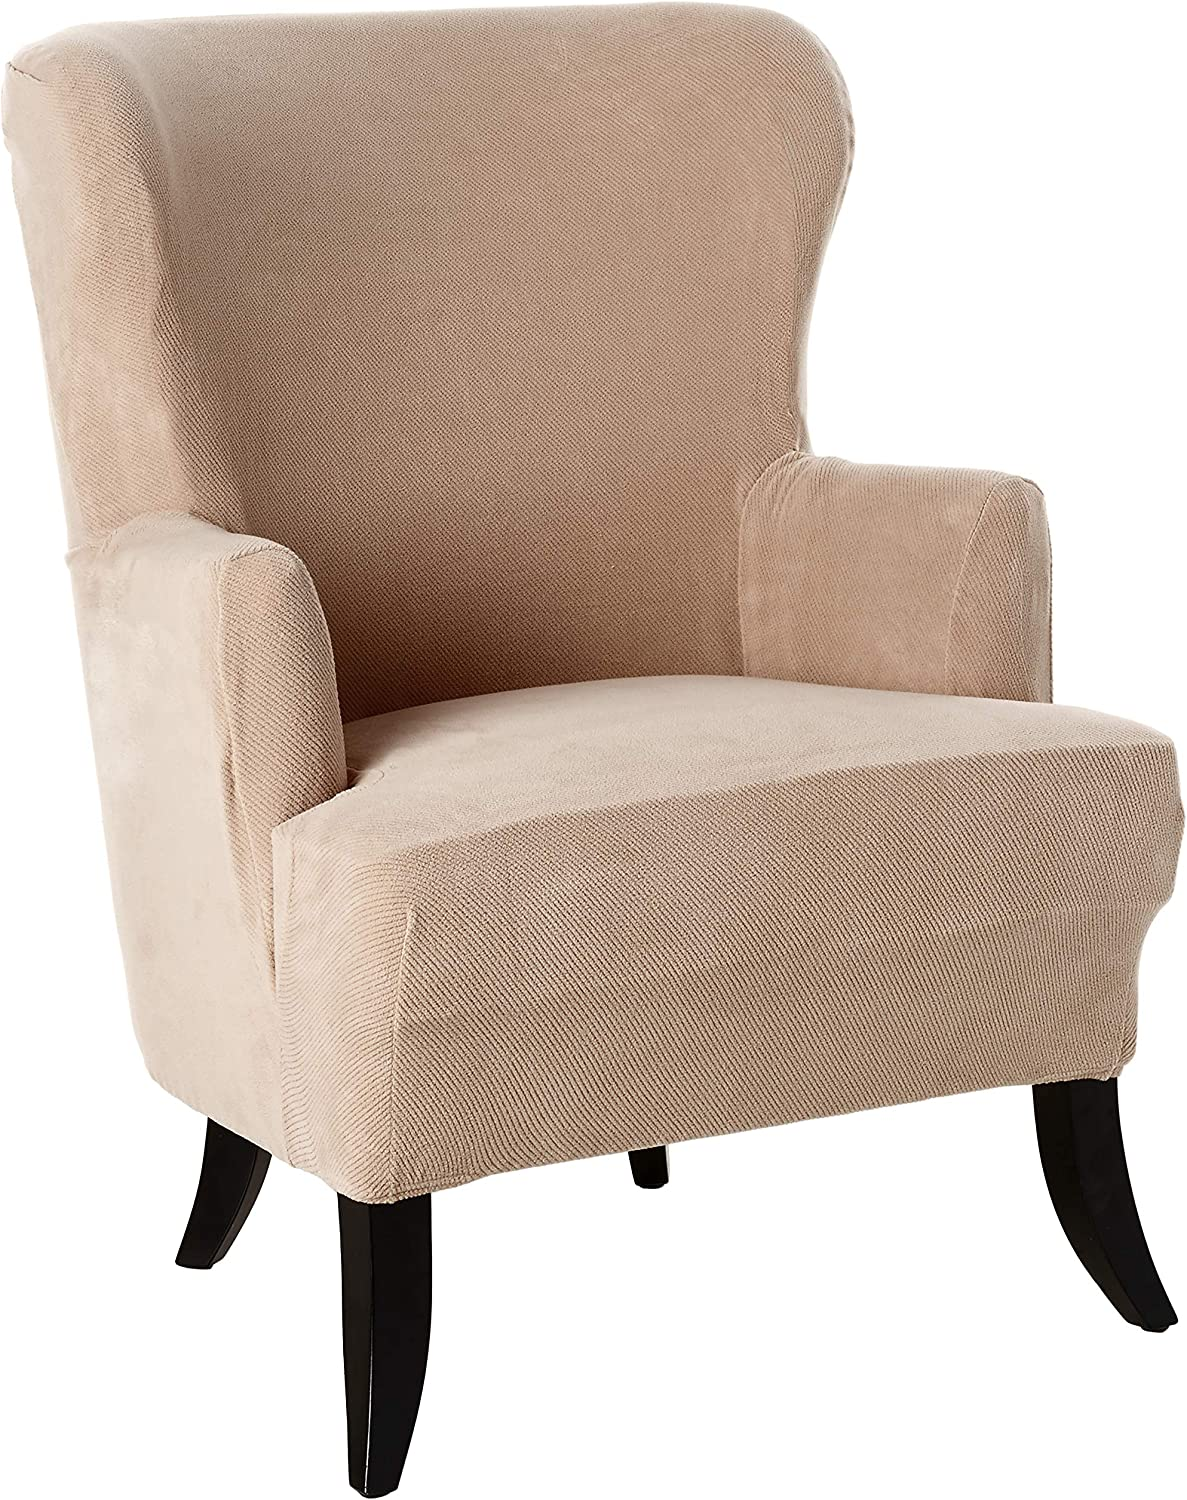 Amazon Com Surefit Stretch Wing Chair Slipcover Taupe Furniture Decor